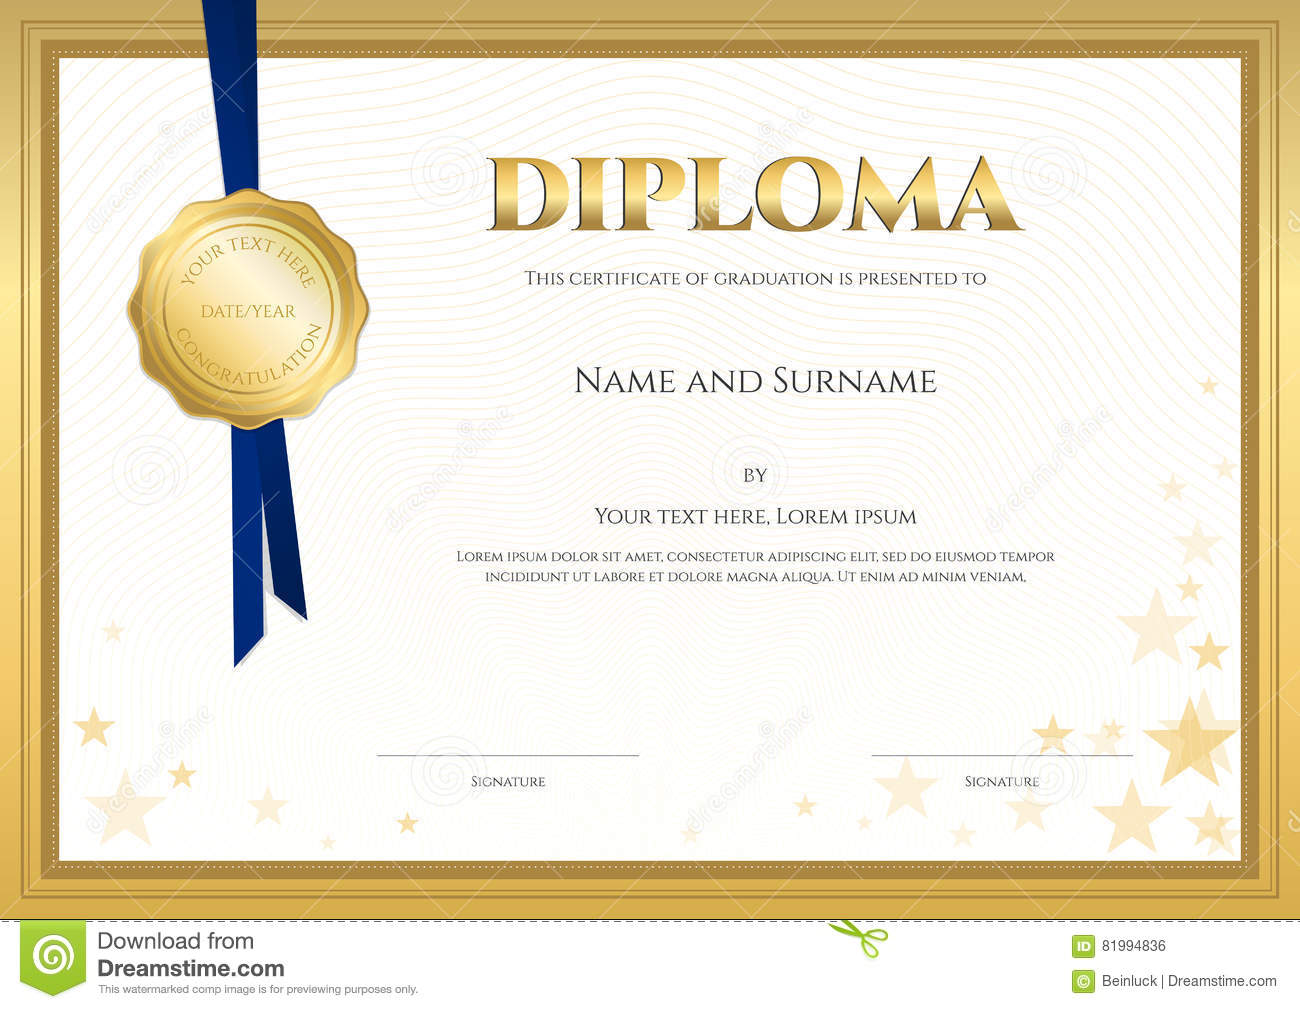 Elegant diploma certificate template for completion stock vector royalty free vector download elegant diploma certificate template yelopaper Choice Image